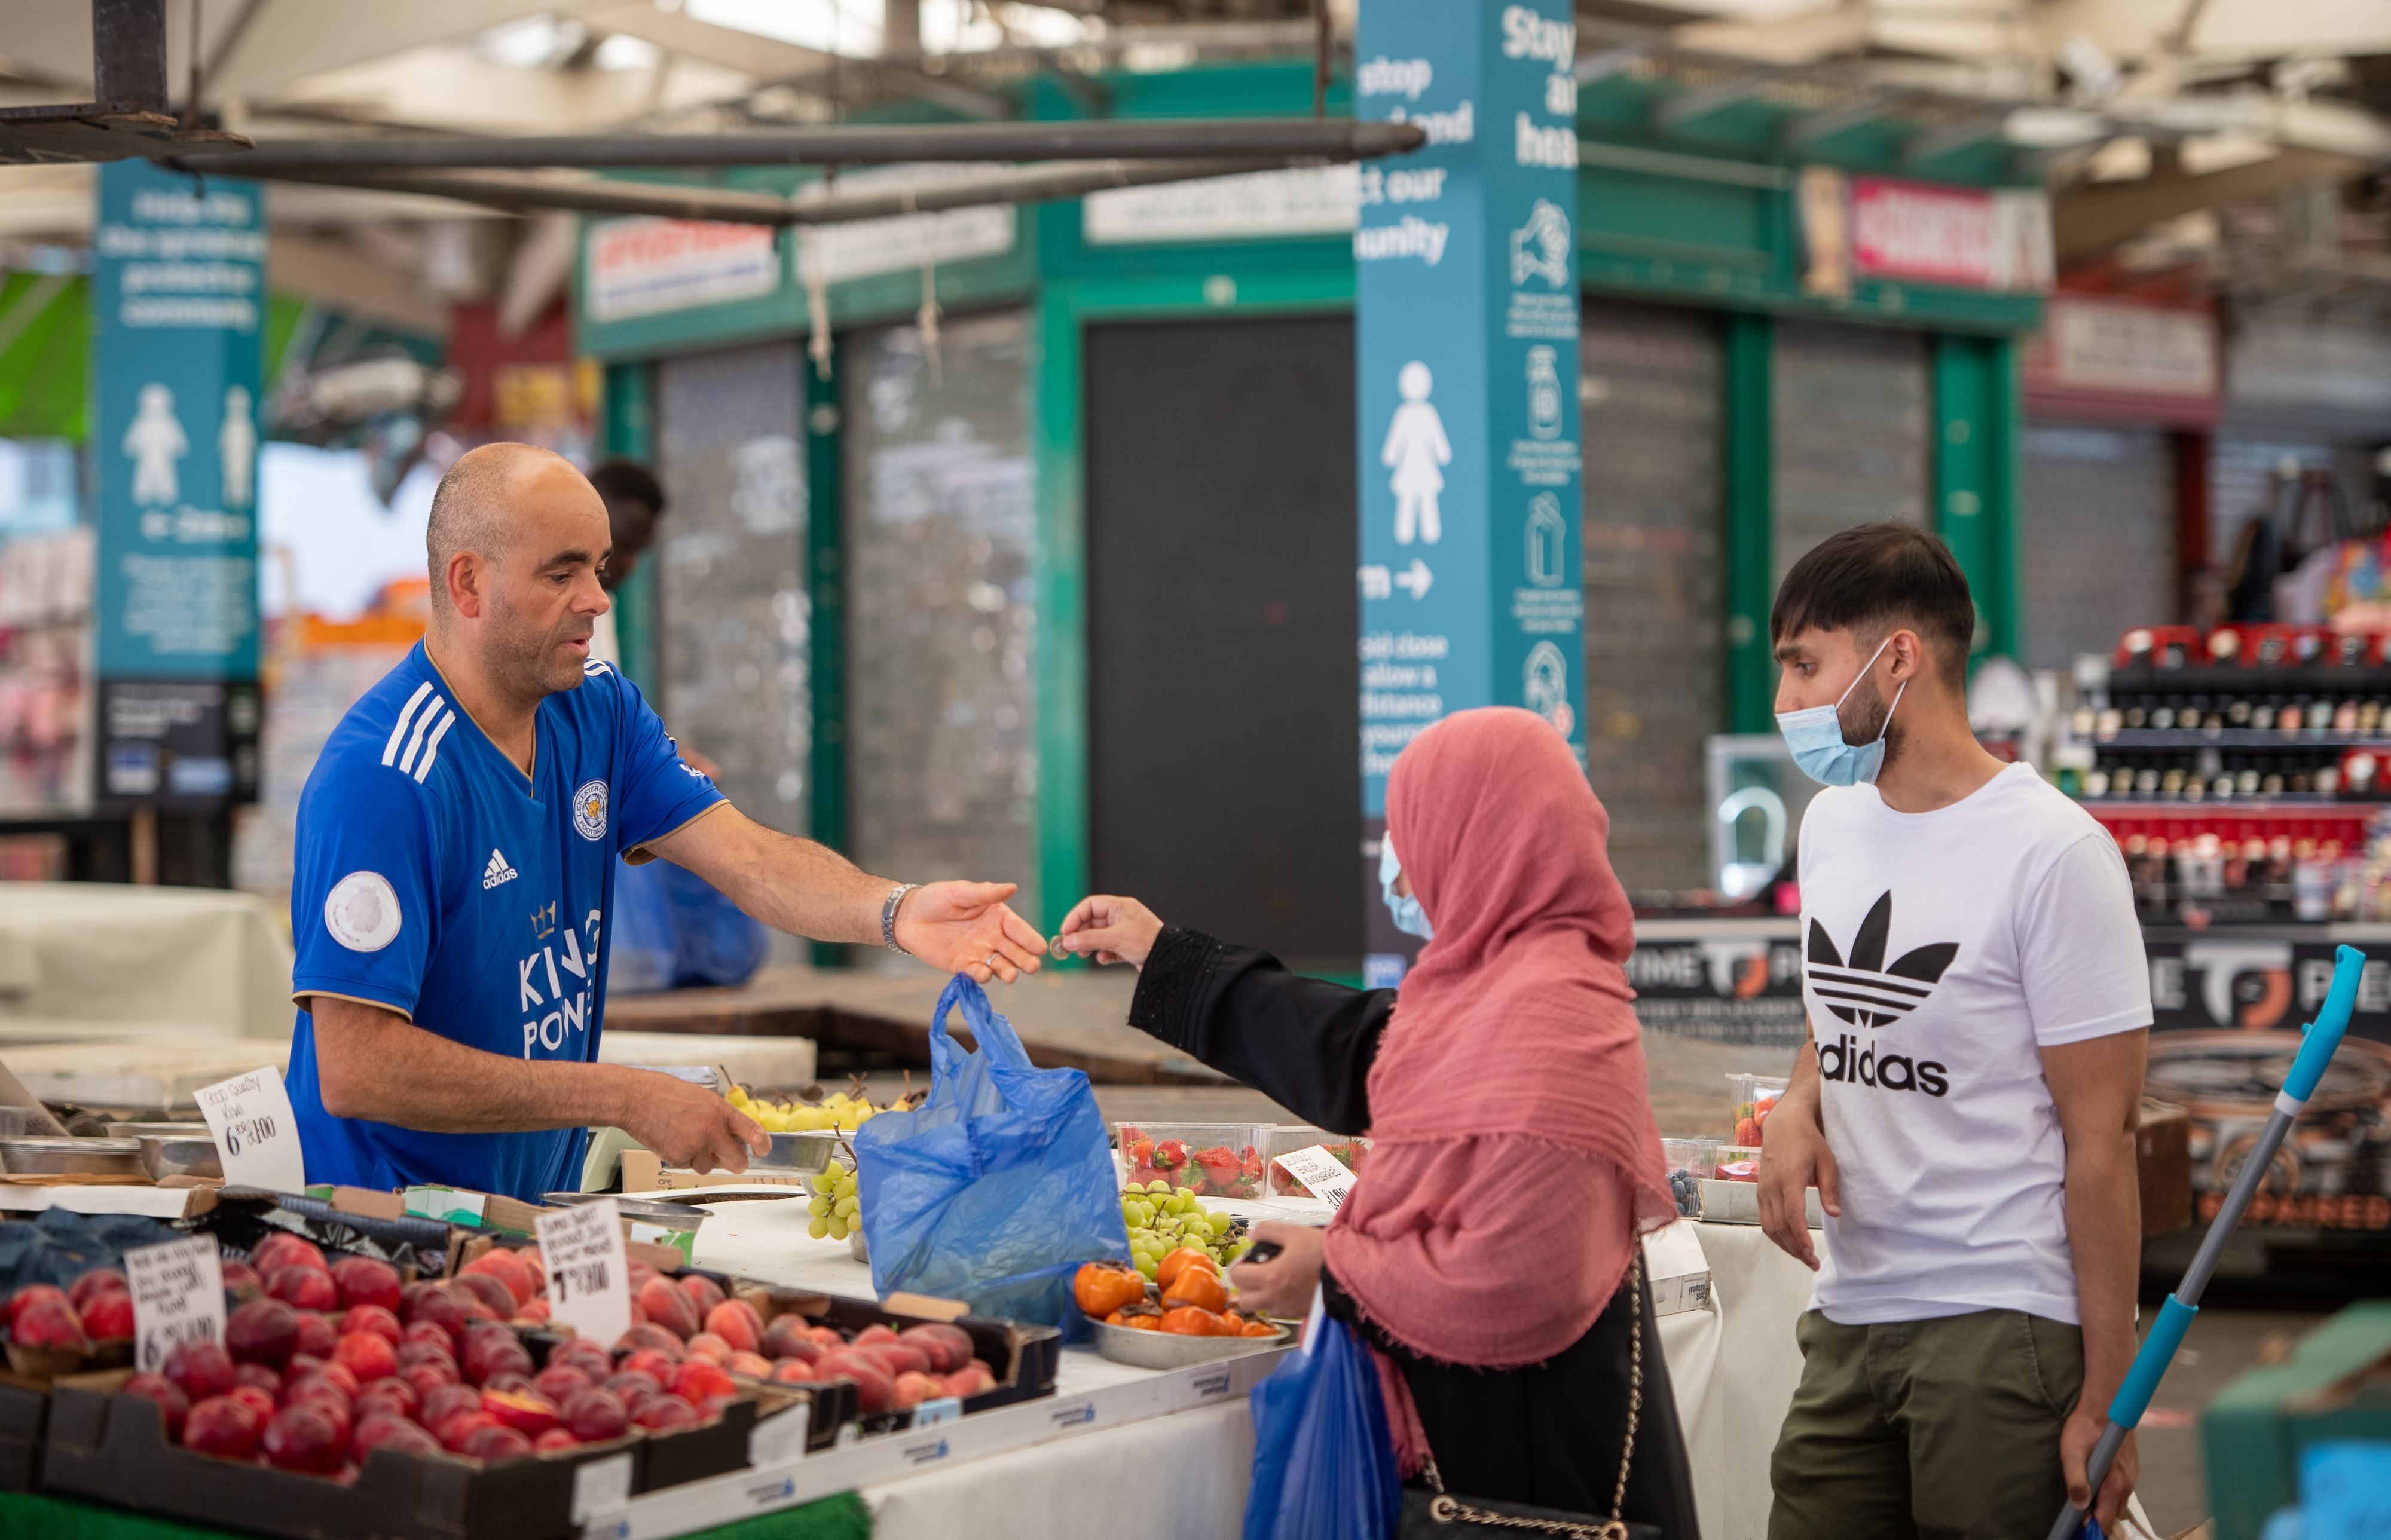 People shop at Leicester Market as a decision is due to be made on whether to lift the lockdown restrictions in the city. (Photo by Joe Giddens/PA Images via Getty Images)